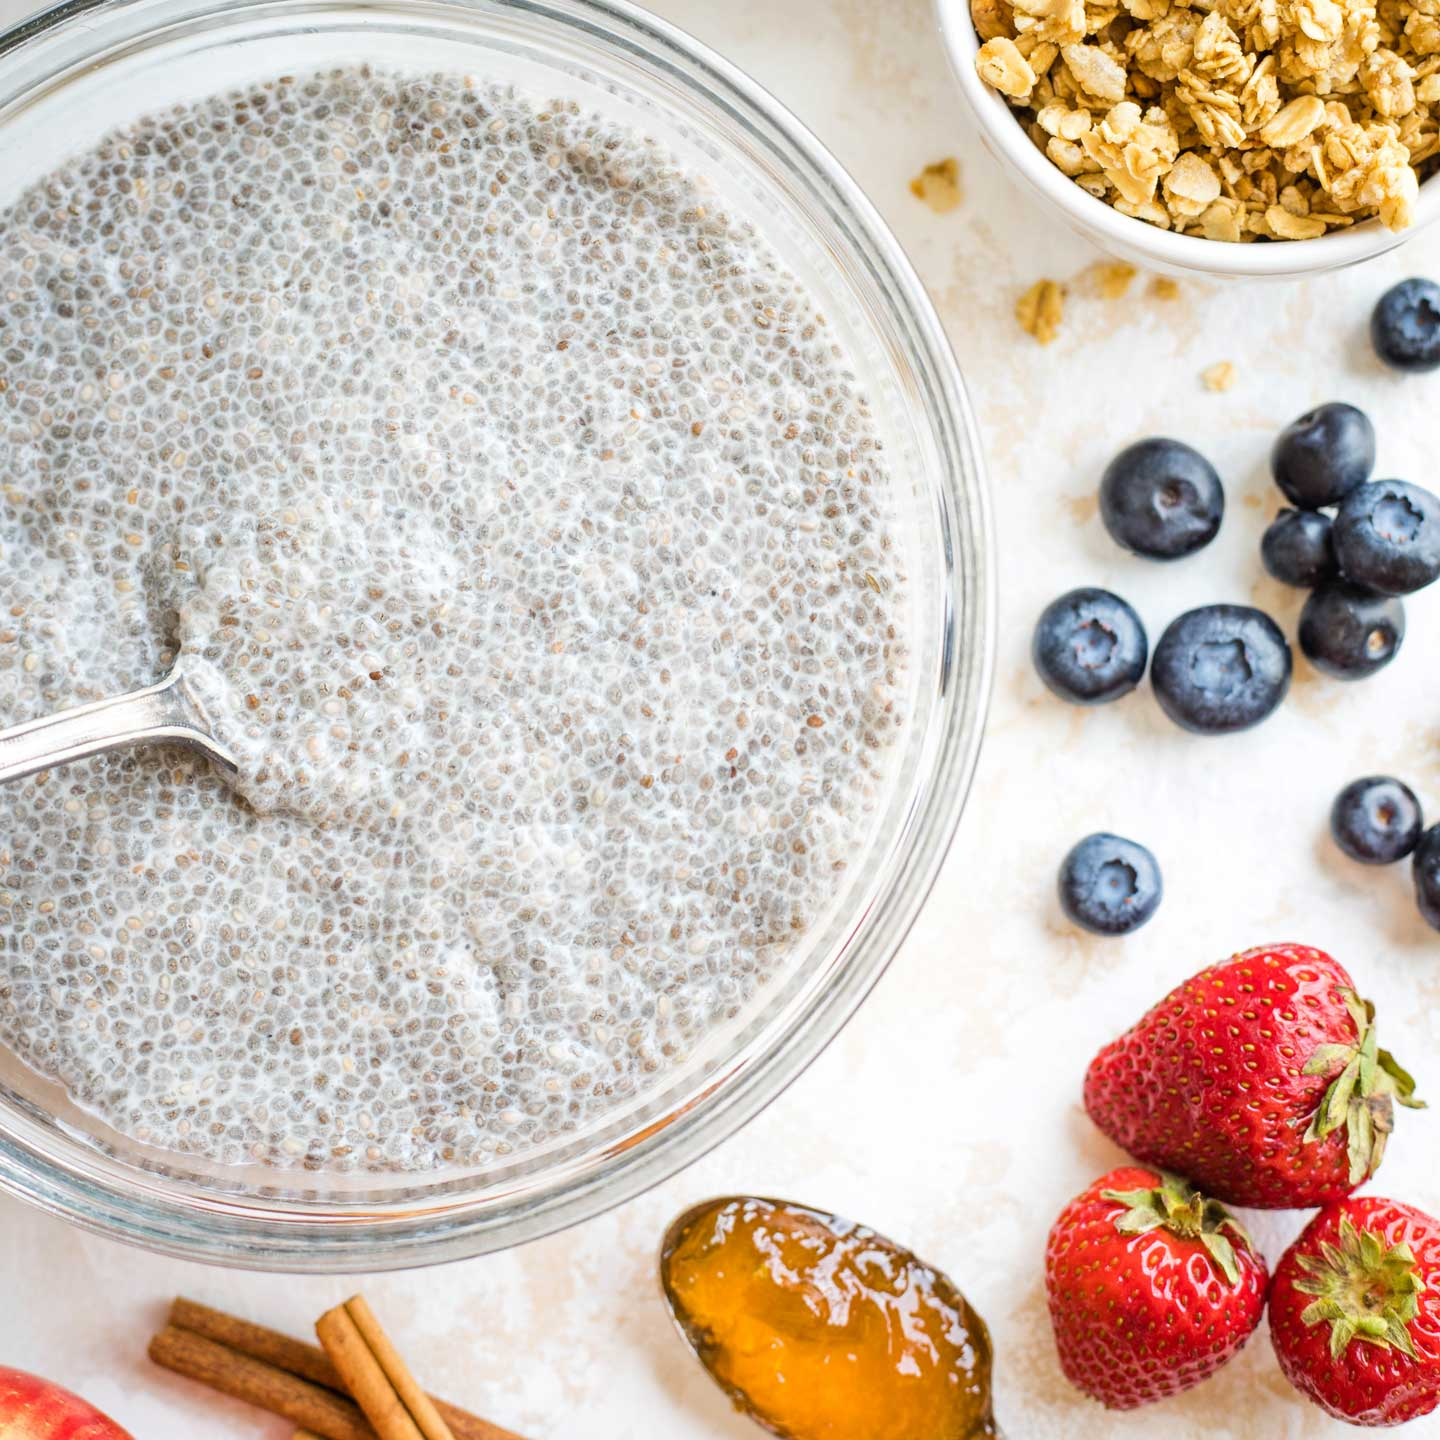 Large bowl of basic Chia Pudding, surrounded by mix-ins like fruit, granola and cinnamon